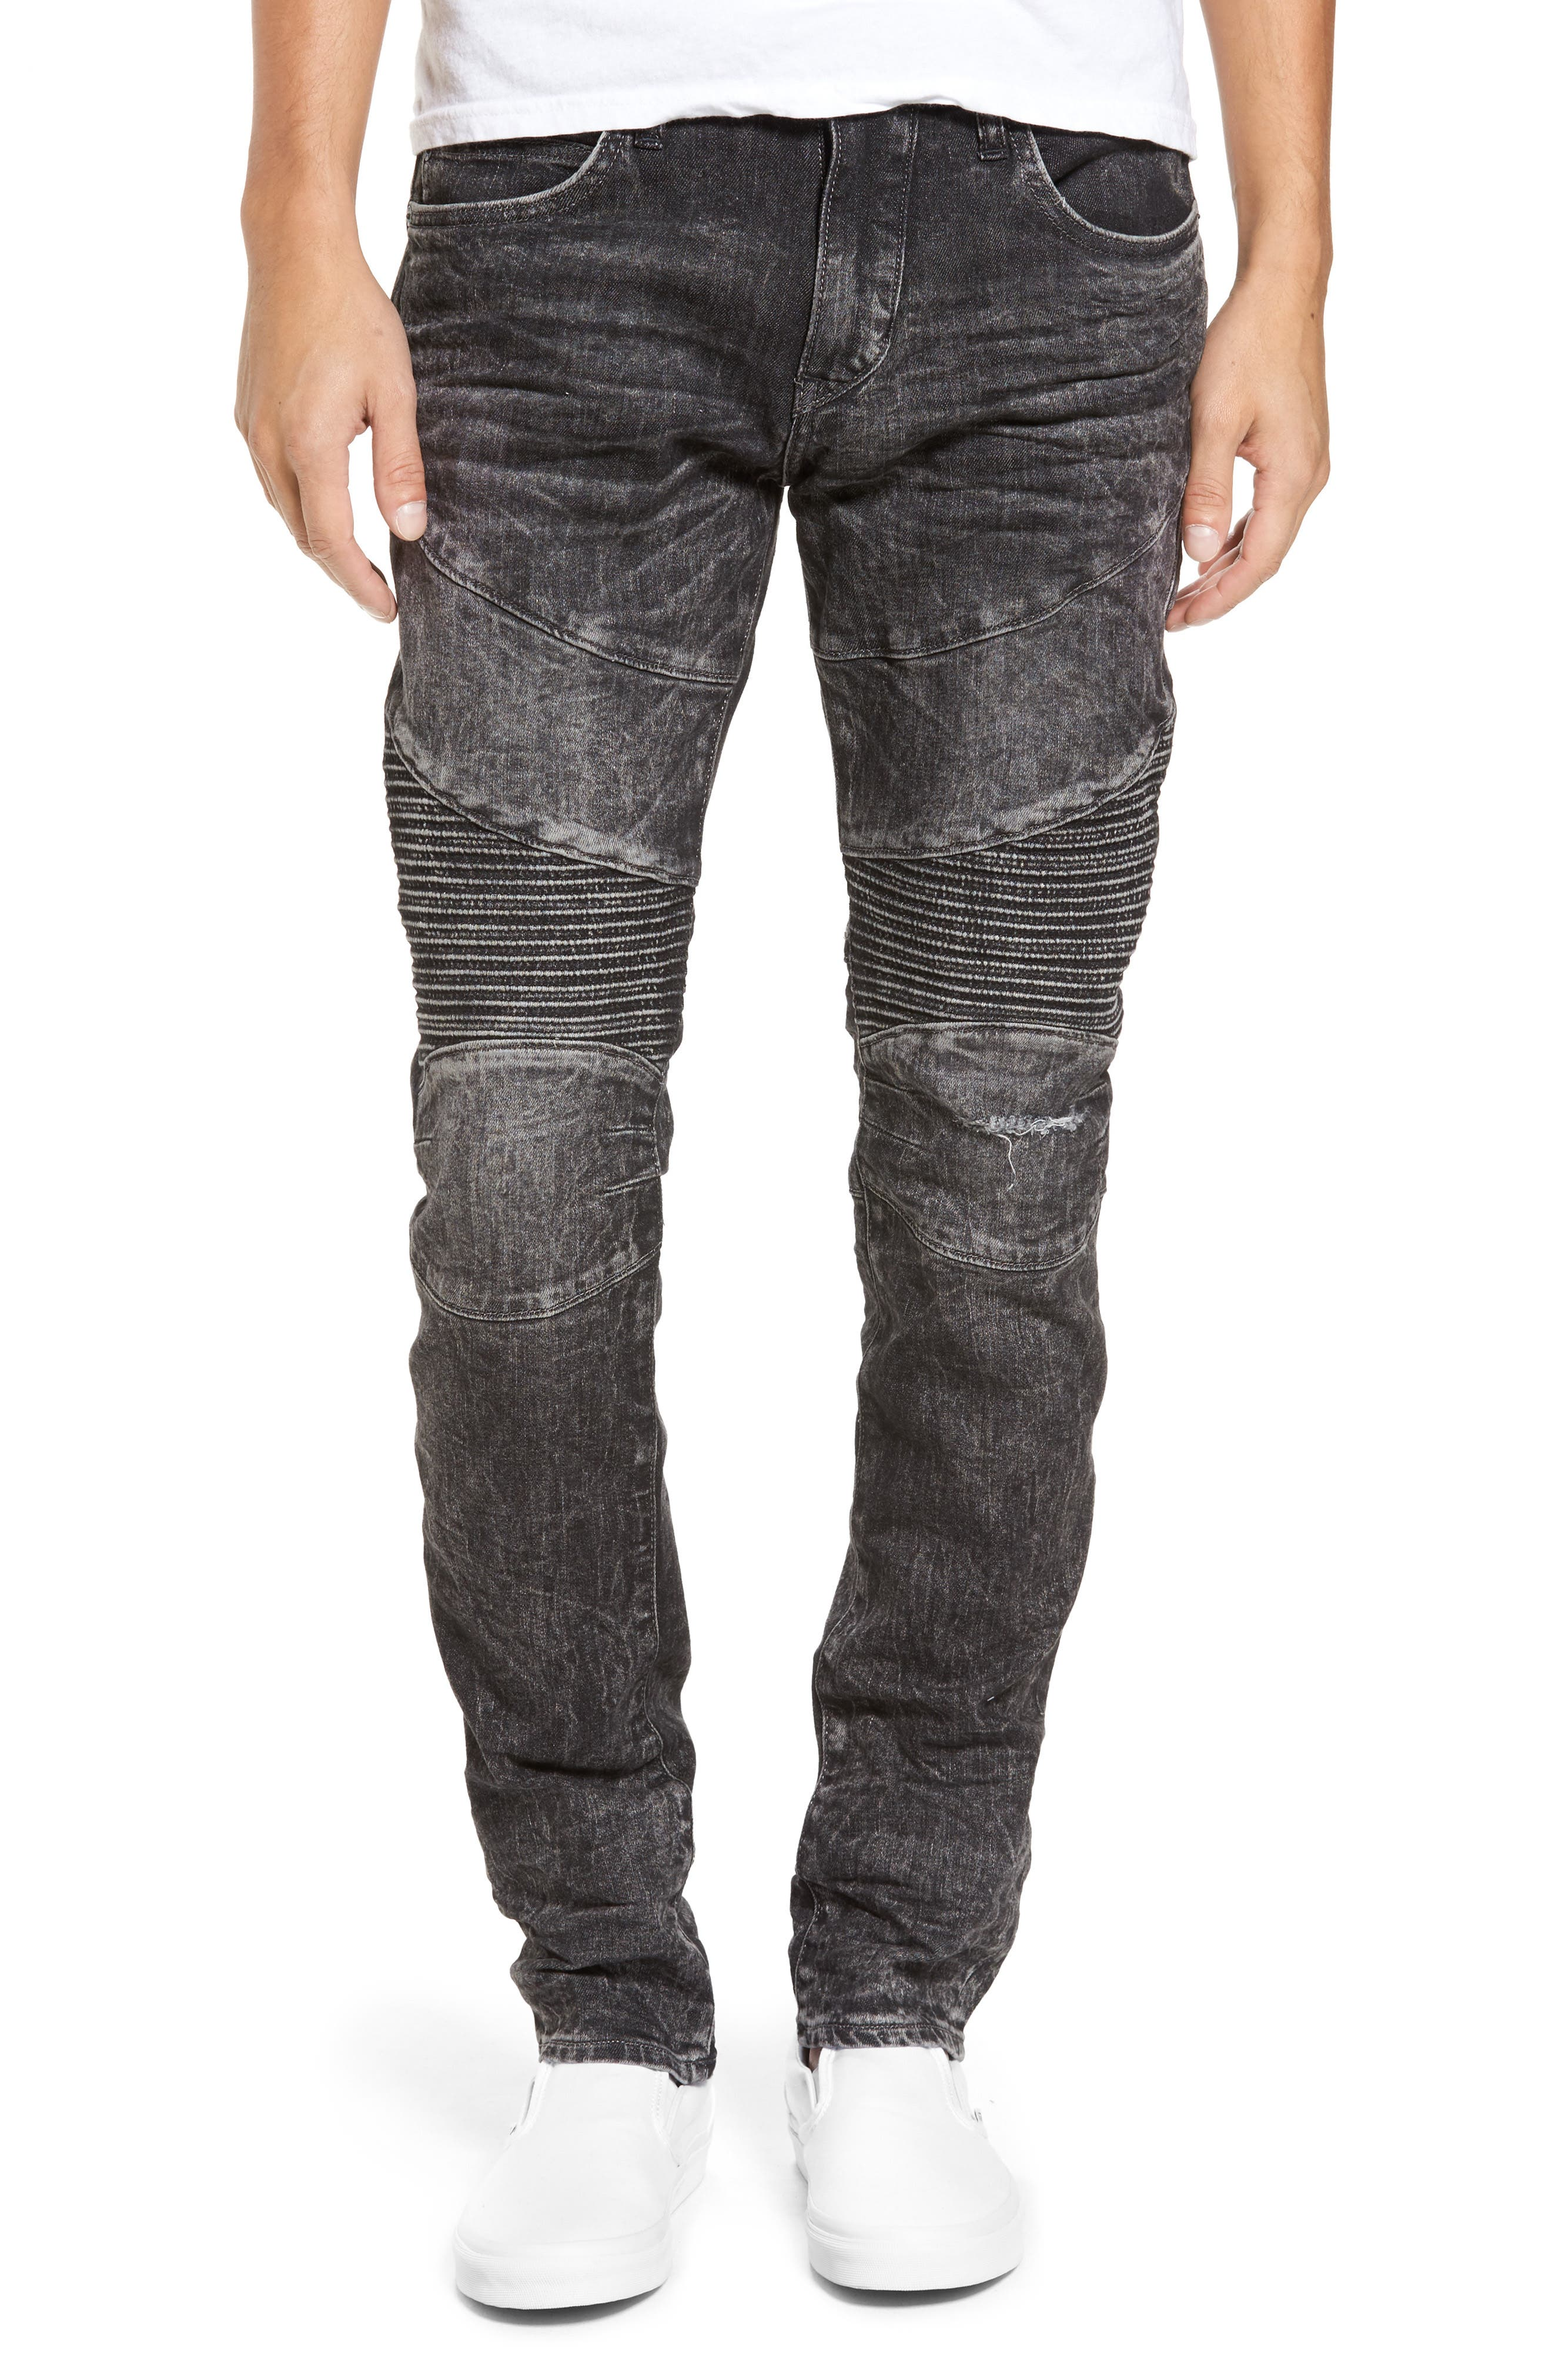 Alternate Image 1 Selected - True Religion Brand Jeans Rocco Skinny Fit Jeans (Dark Raven)